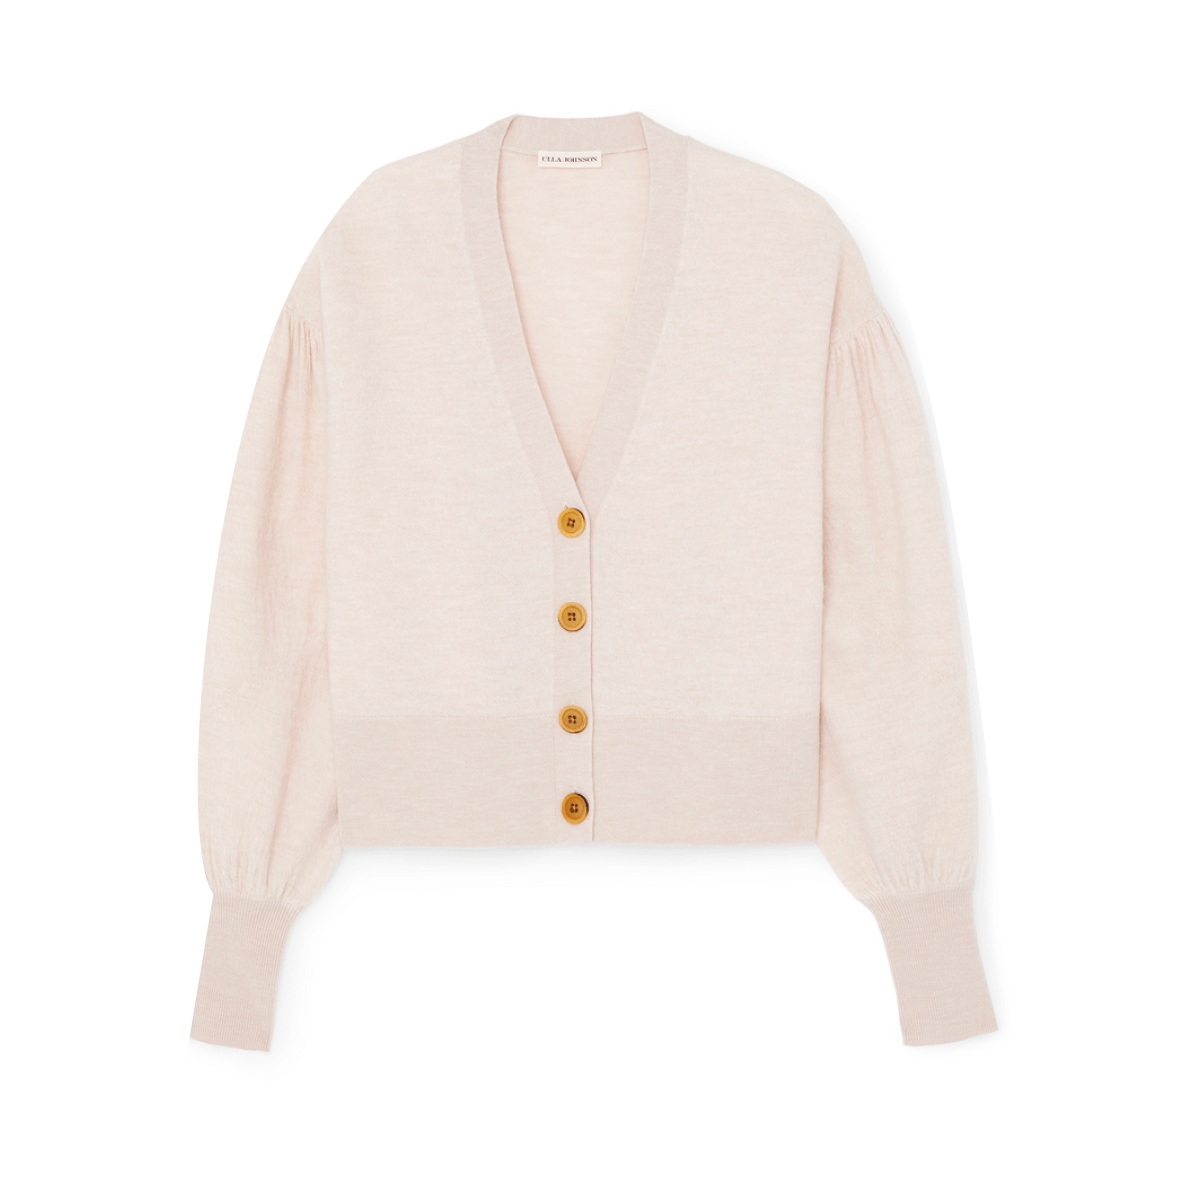 ulla Johnson cardigan